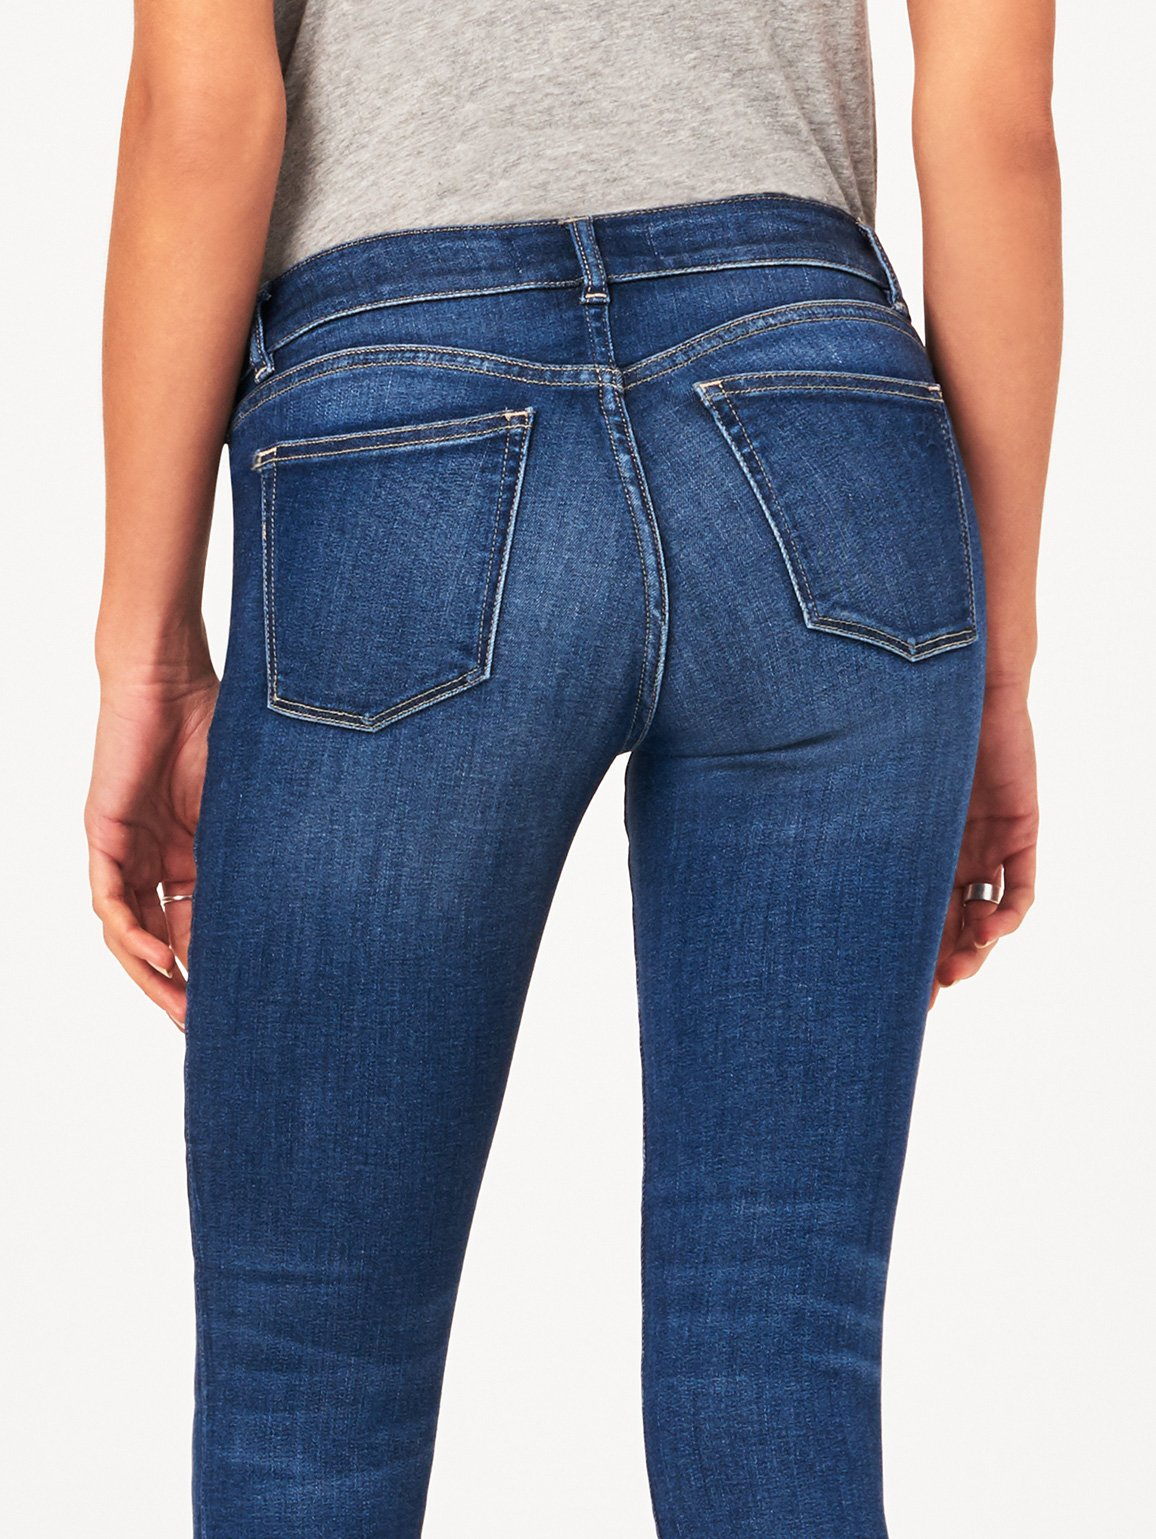 Emma Low Rise Skinny | Nevada DL 1961 Denim